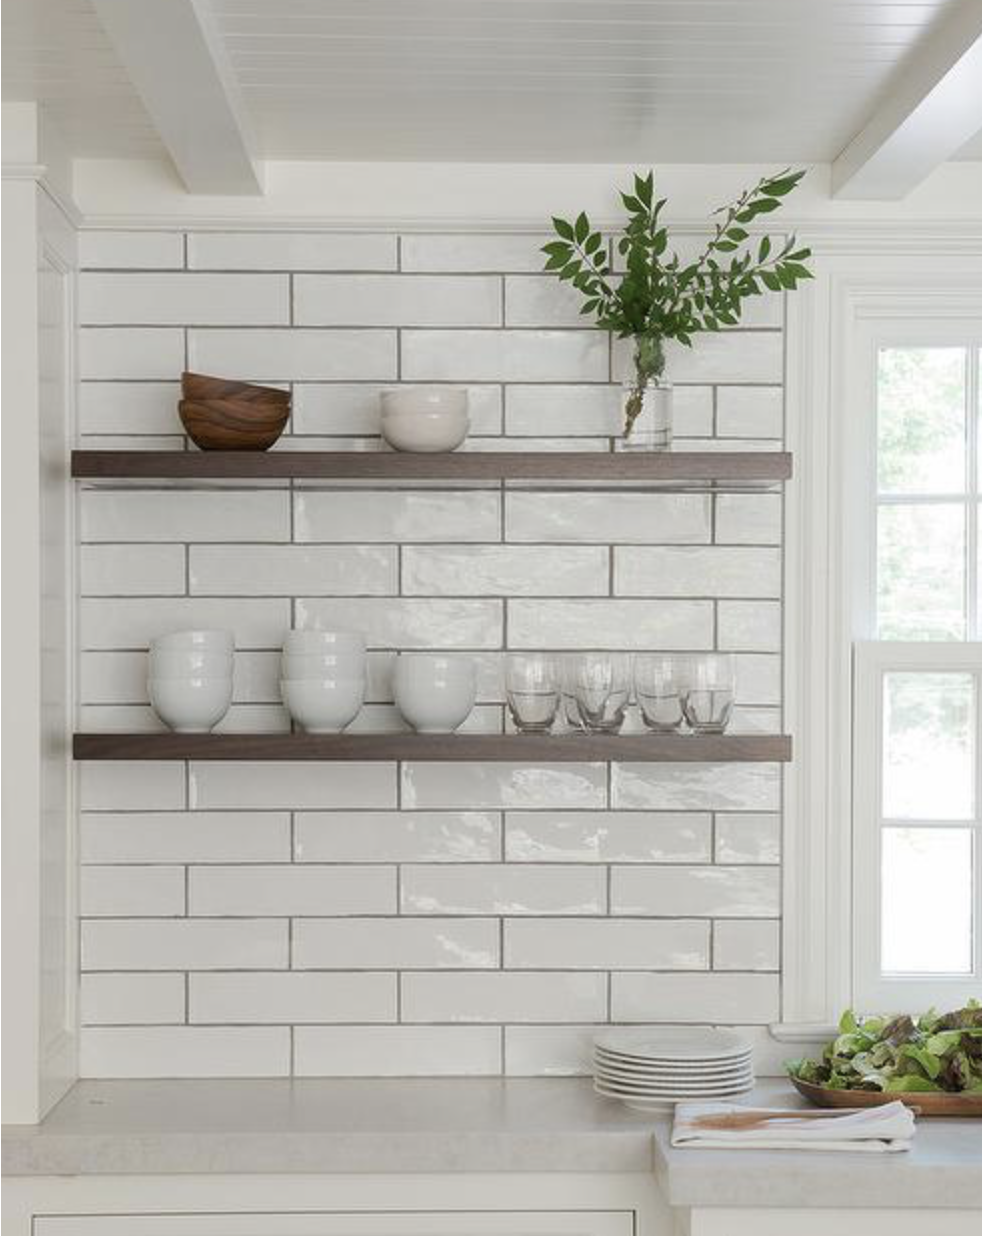 Substitutes for Classic Subway Tile